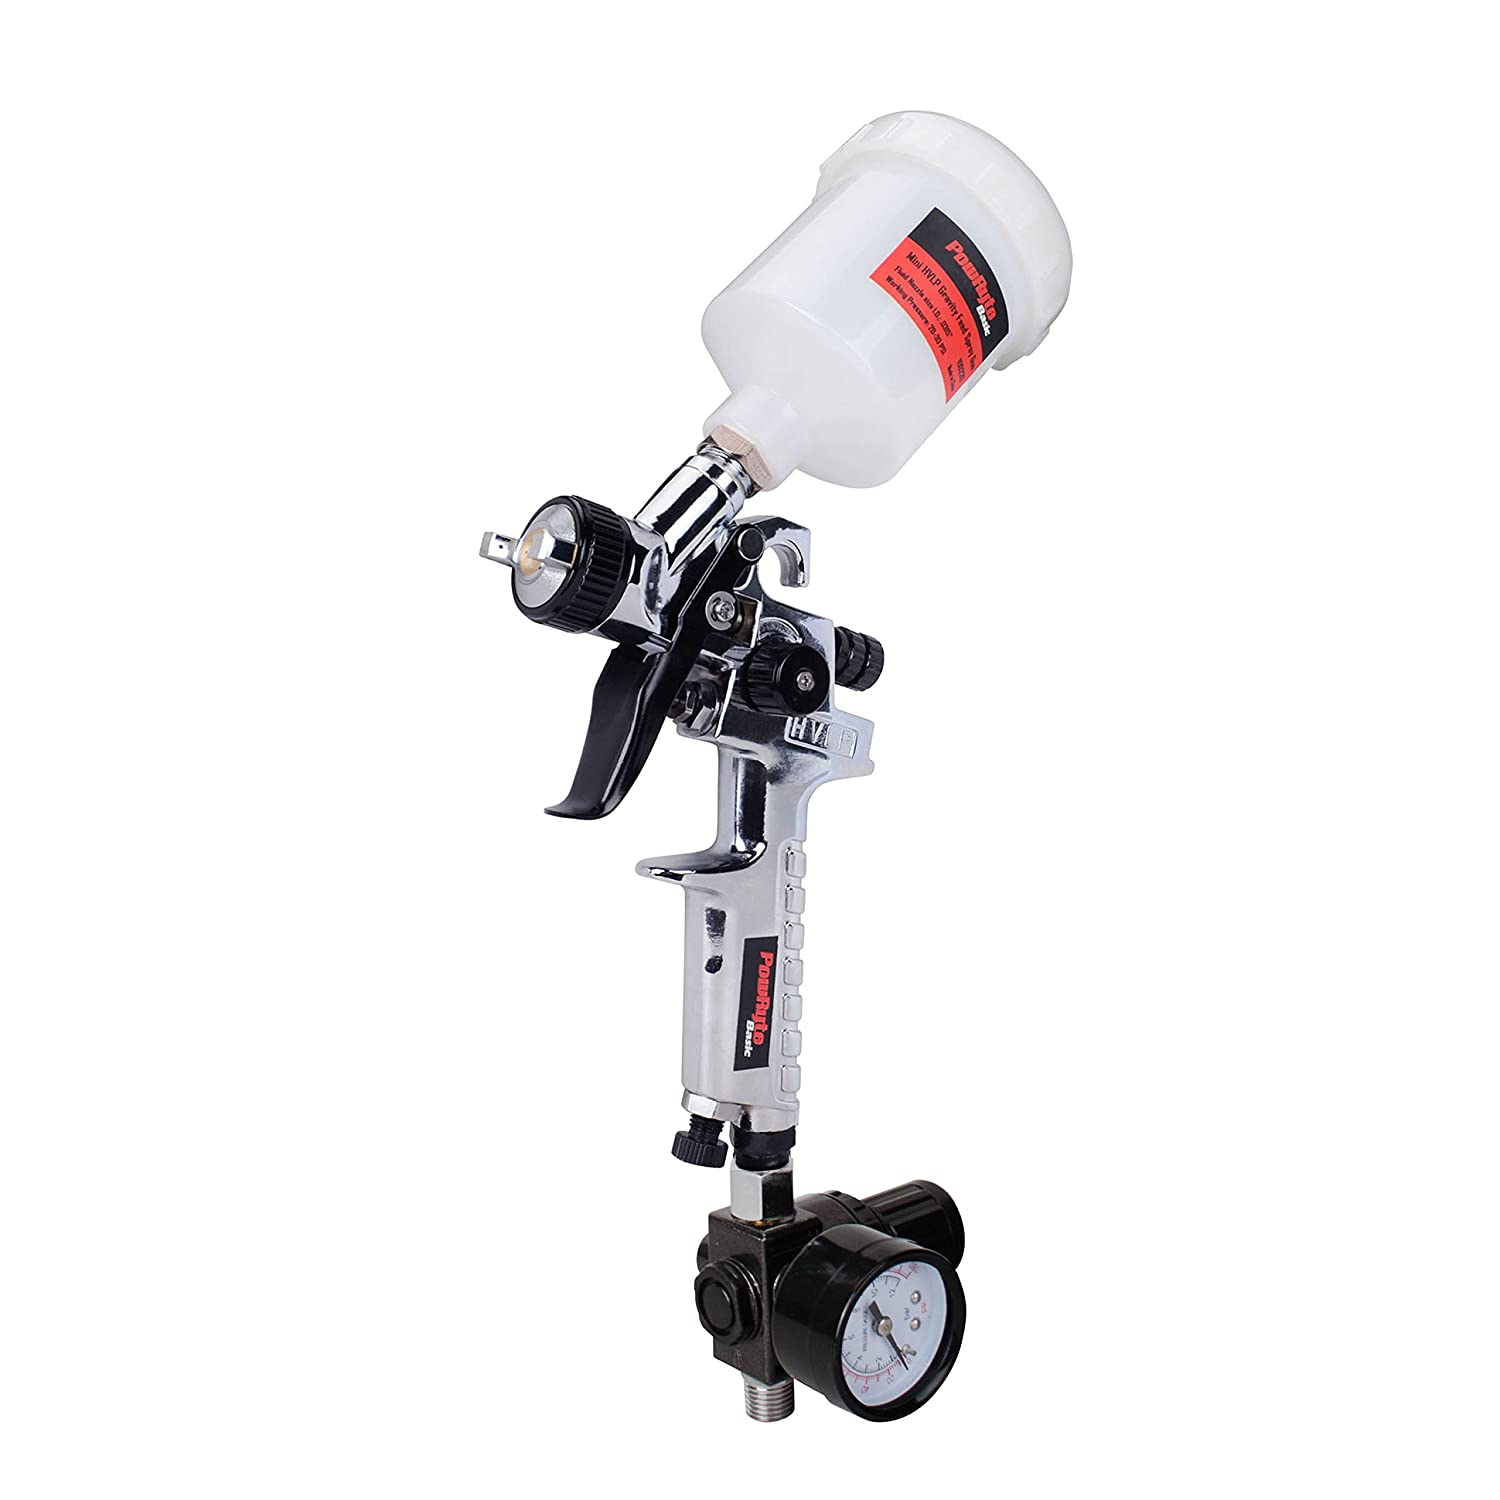 PowRyte Basic Mini HVLP Gravity Feed Air Spray Gun